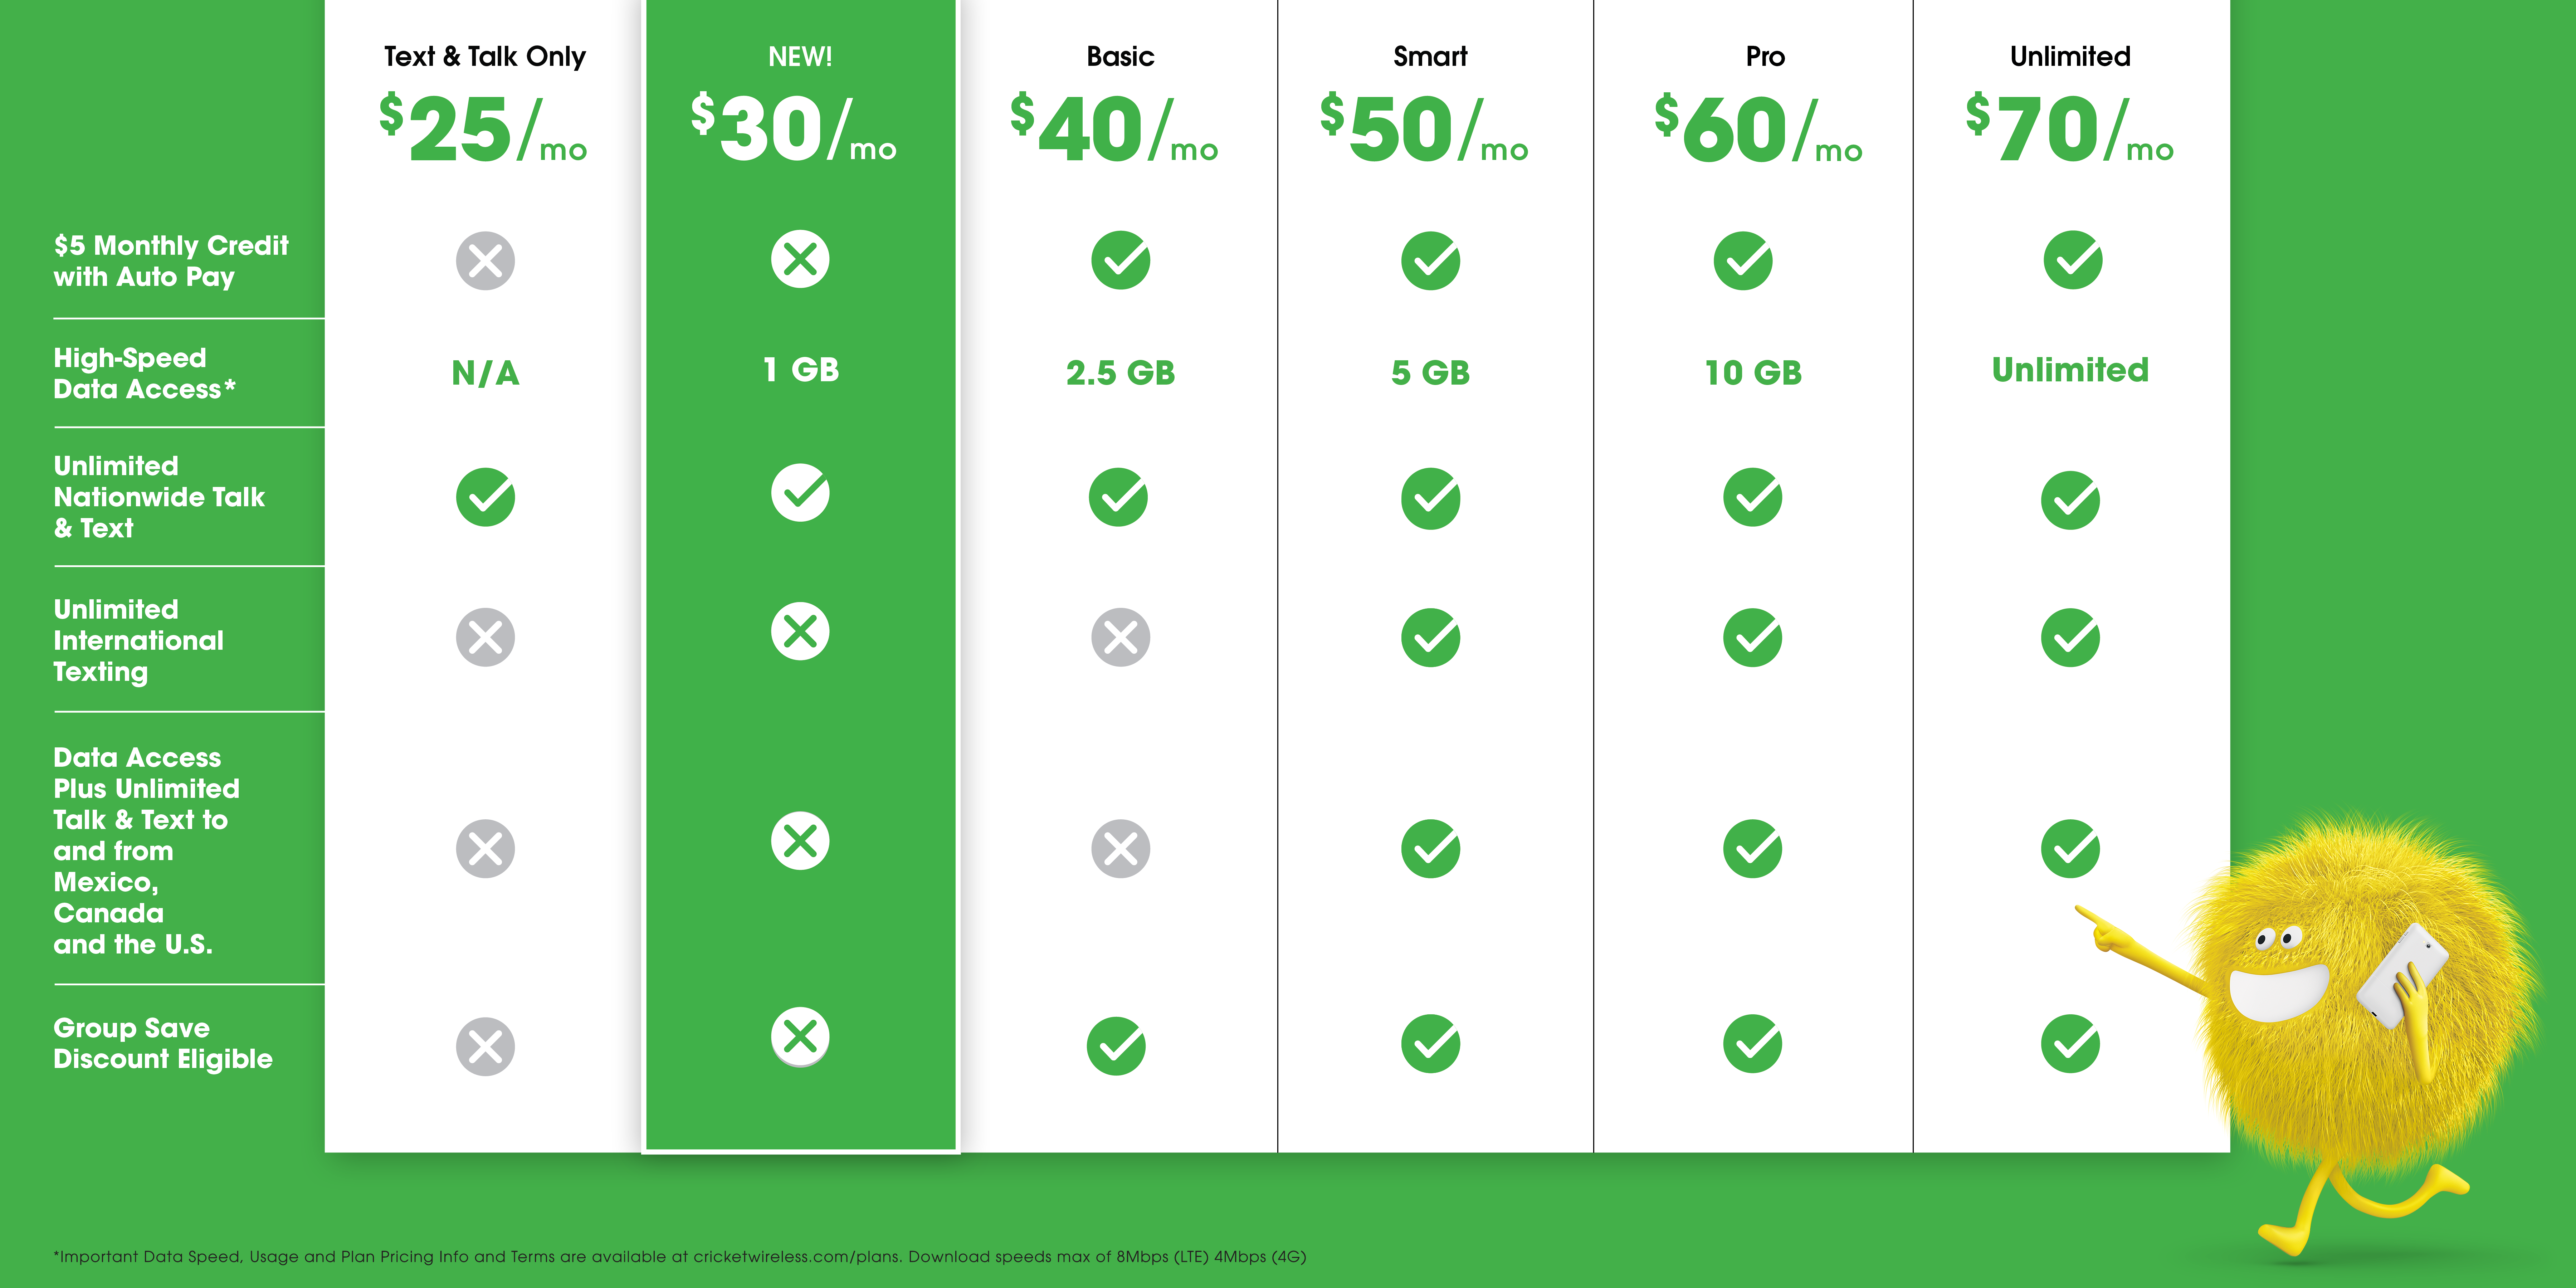 cricket wireless creates its most affordable plan yet